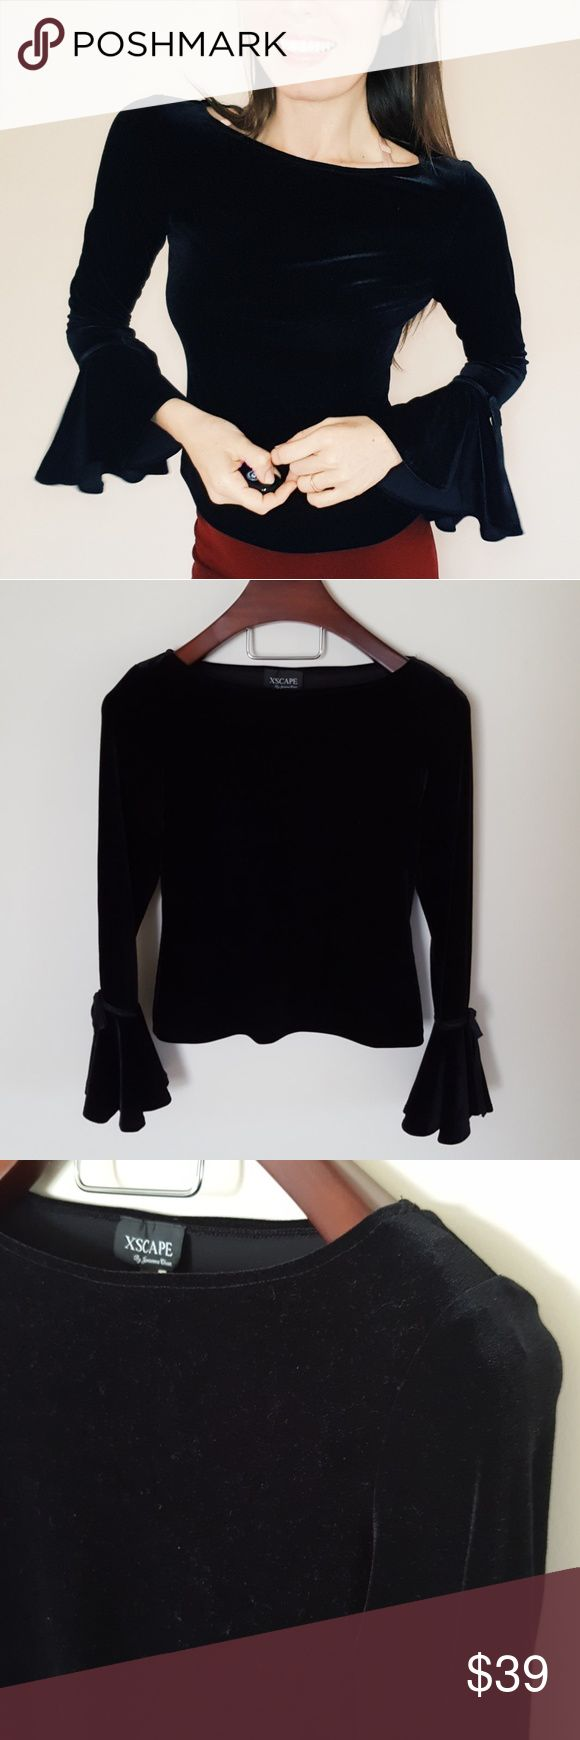 Xscape| Velvet black bell sleeve top | small In excellent condition! Beautiful velvet top with adorable sleeve detail! Small bows on sleeves. Size small. Stretch material, vintage style, sold at Nordstrom and other department stores  Used item: pictures show any signs of wear. Bundle up! Offers always welcome:) Xscape Tops